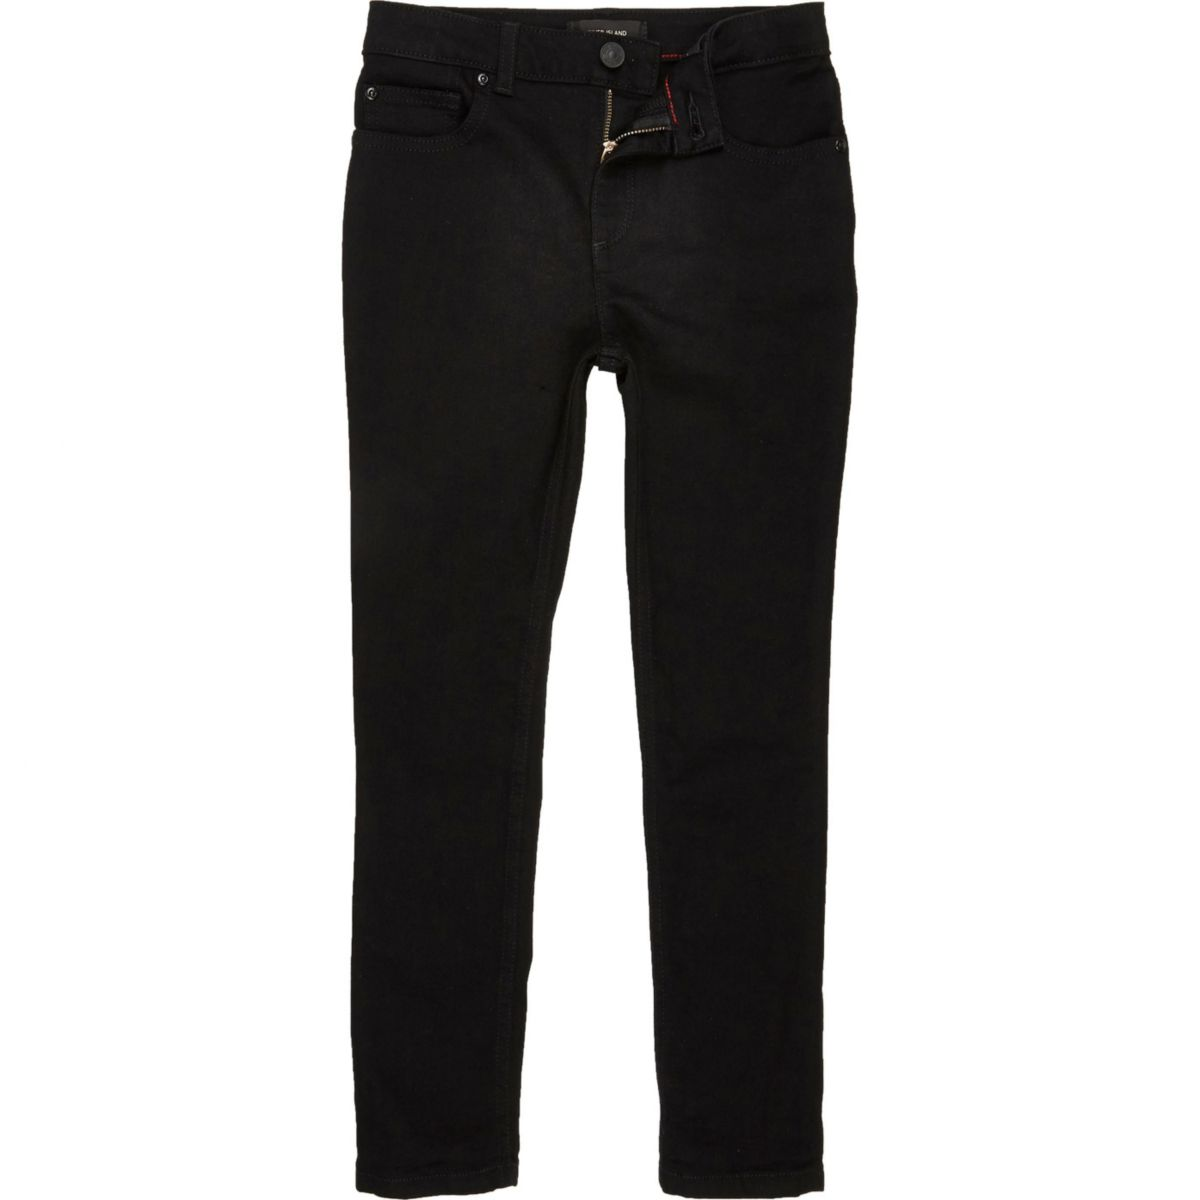 Maybe you like your stretch jeans that have some give while you're active, or a pair of black jeans you can wear anywhere with a flannel shirt. We even have super skinny jeans for men if you are looking for something really sleek.